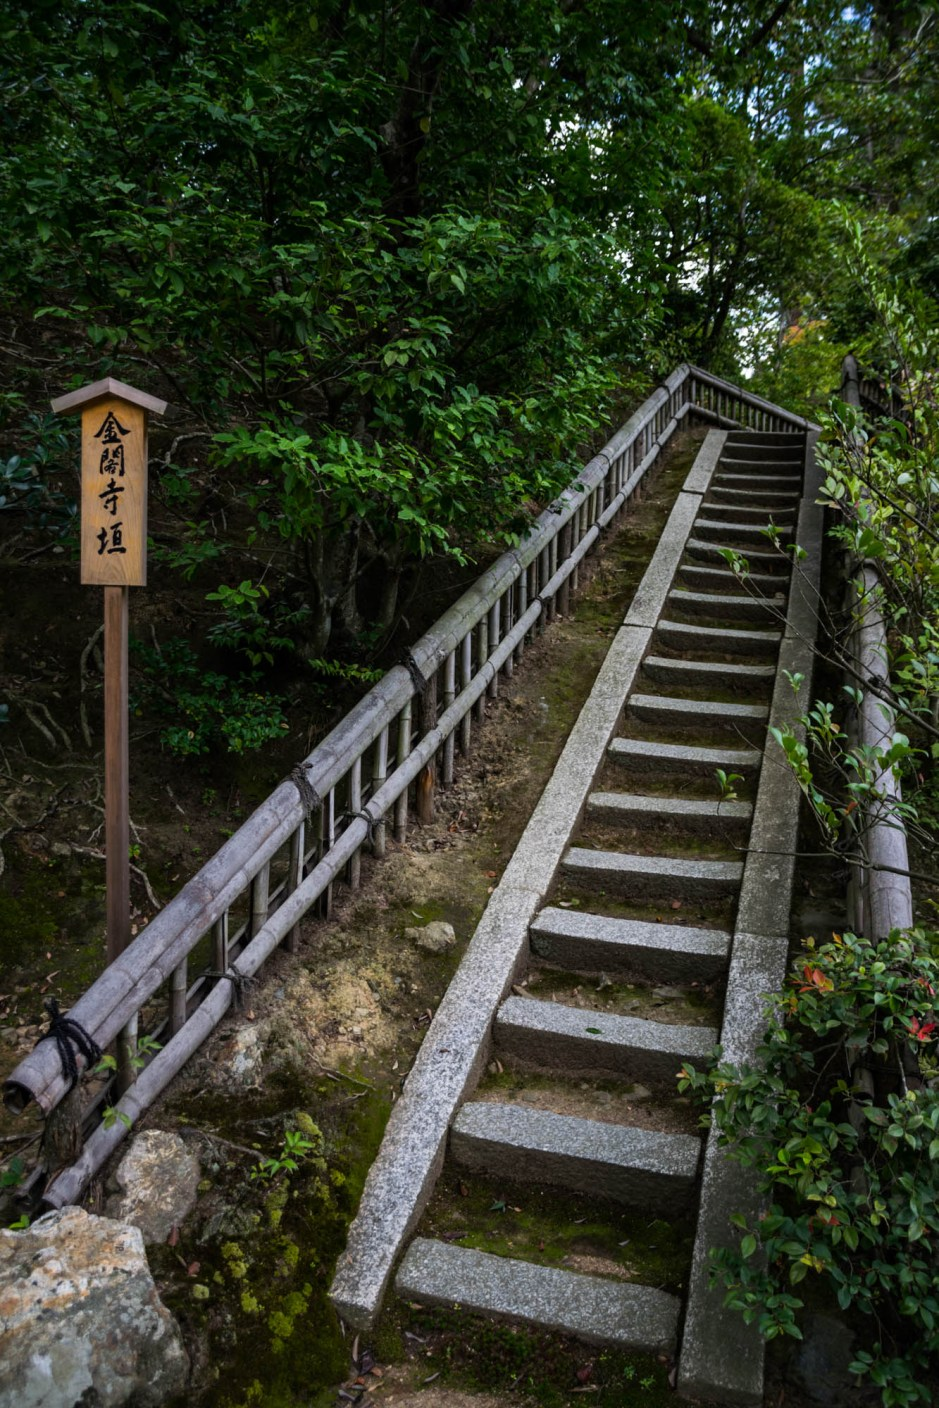 Stone stairs with a bamboo handrail in a japanese garden lead to the unknown. A wooden sign with traditional japanese characters is posted.